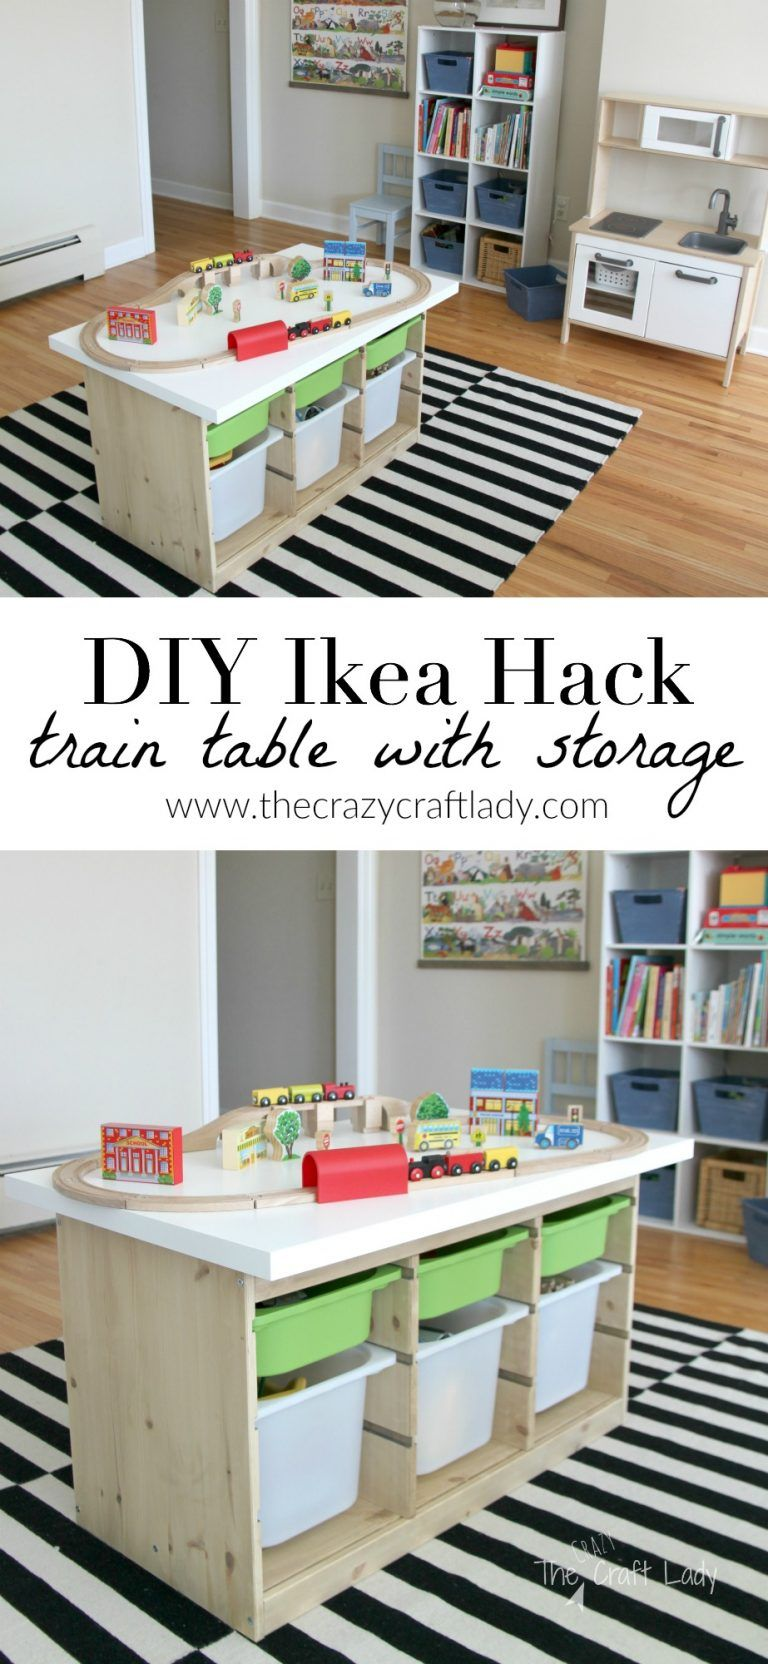 IKEA Hacks the Kids Will Love - The Cottage Market